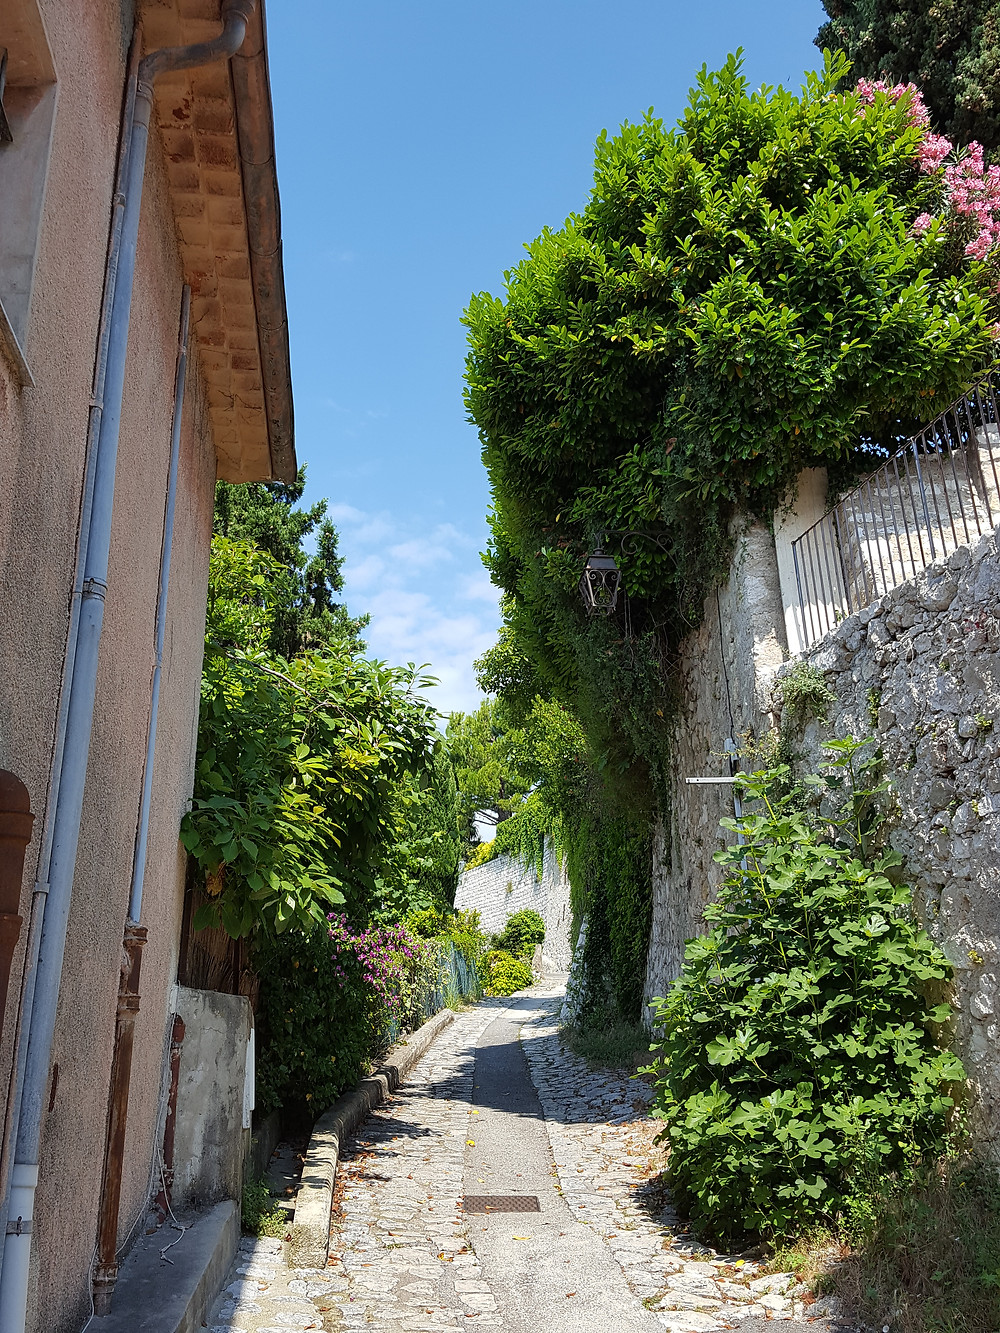 My run begins on a cobblestone road. Someday I will have a bubblegum pink Fiat 500 that I'll drive up narrow streets like this.